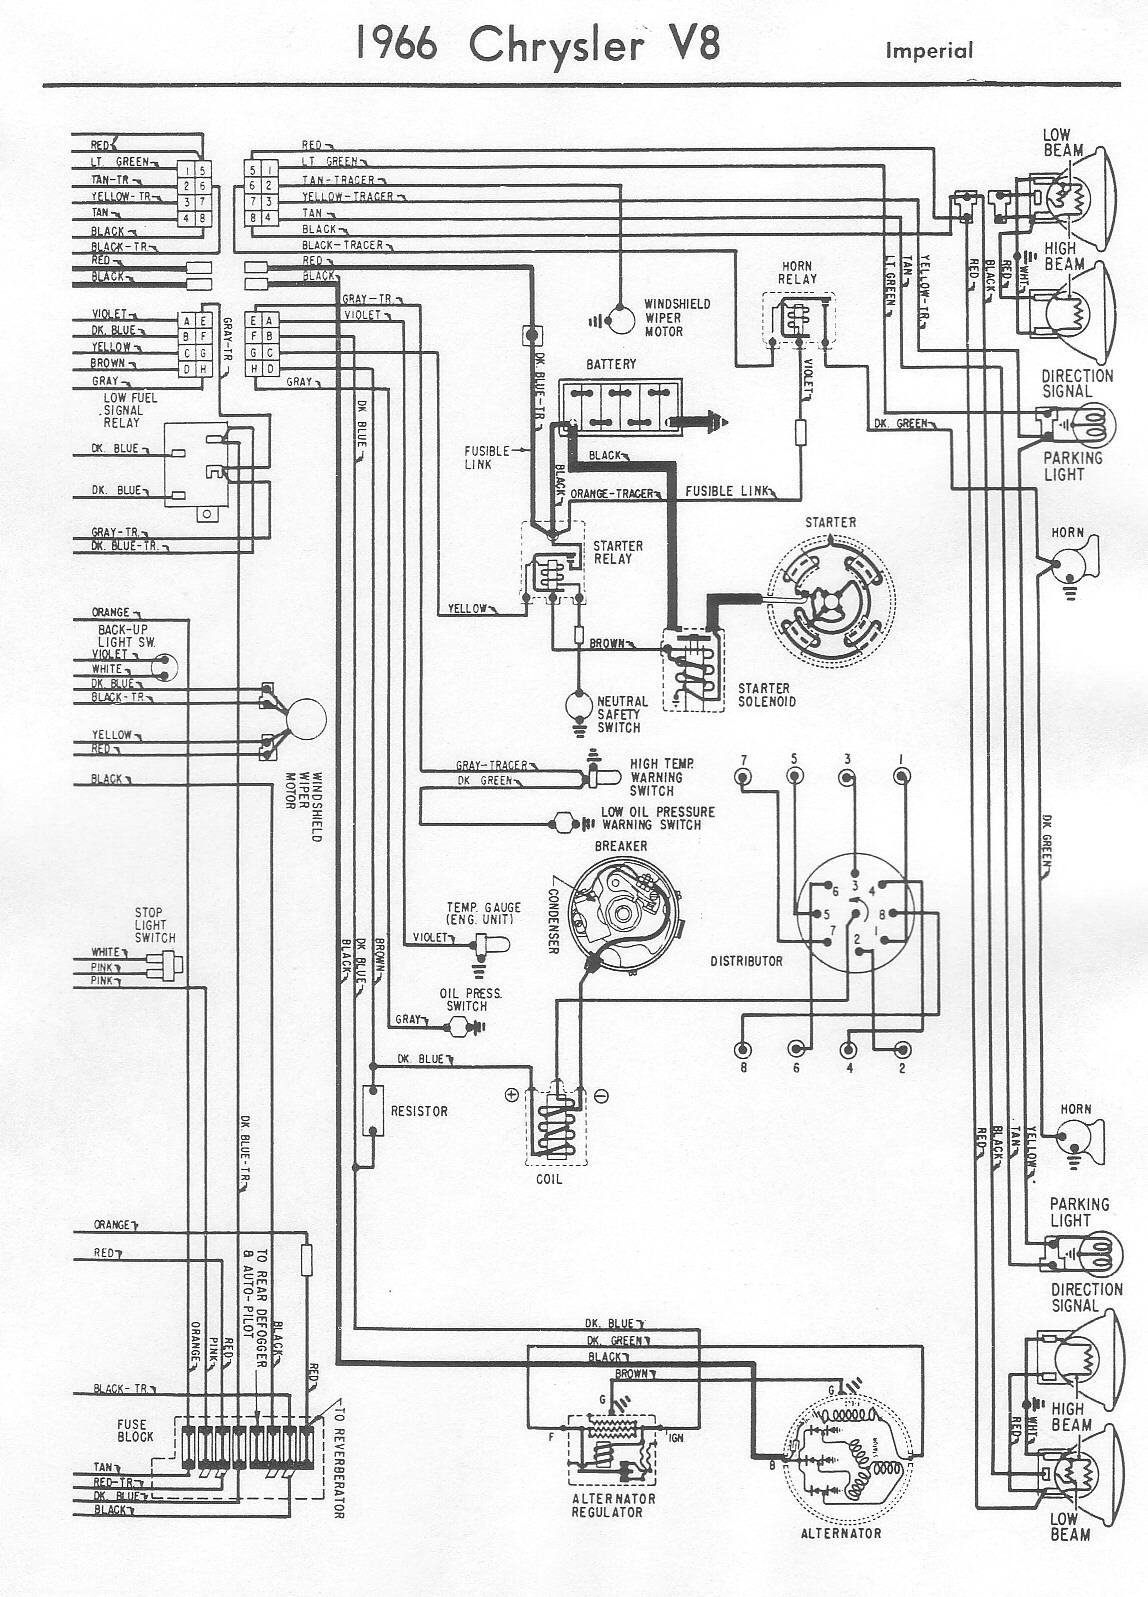 65 mustang engine wiring diagram with Chrysler 300 Engine Wiring Diagram on 631764 Vacuum Lines Diagrams I further Dune Buggy Turn Signal Wiring Diagram also Chrysler 300 Engine Wiring Diagram likewise Parking Emergency Brake 63 Sprint Convertible likewise 1970 Fairlane 500 Steering Column Diagram.